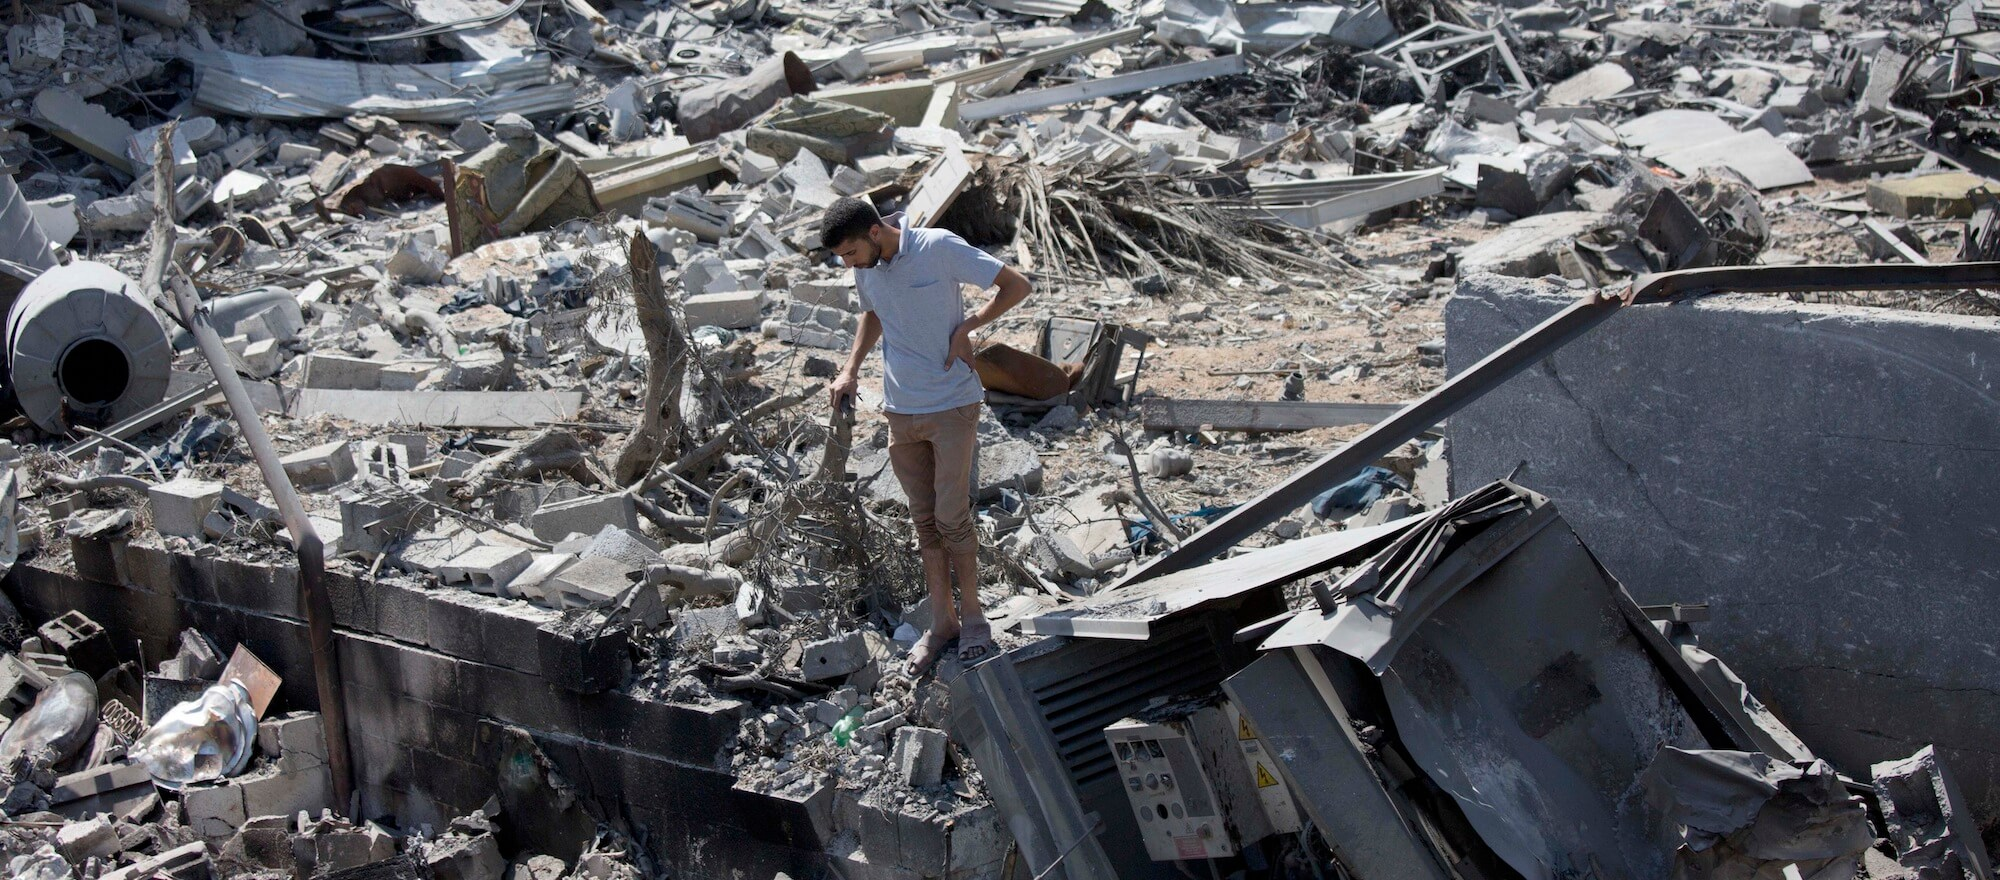 A Palestinian inspects a destroyed house in the heavily bombed Gaza City neighborhood of Shijaiyah, close to the Israeli border, Friday, Aug. 1, 2014. (AP Photo/Dusan Vranic)